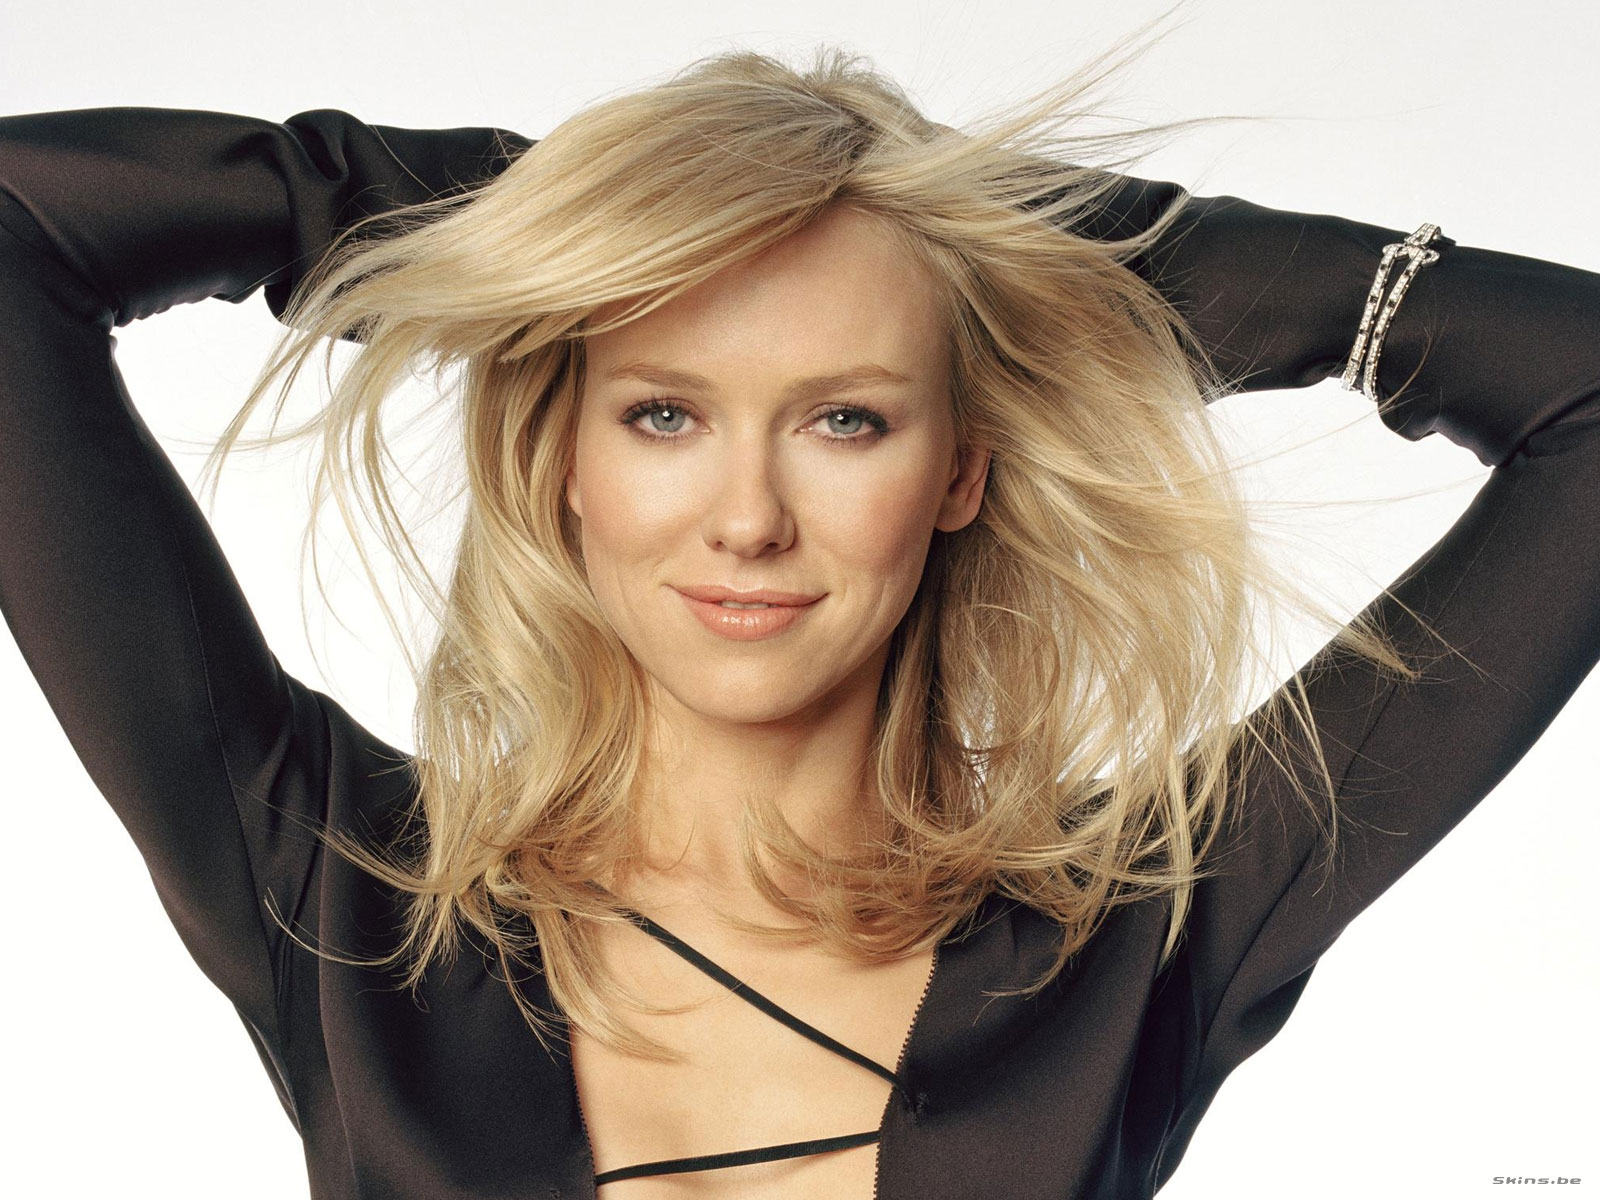 Naomi Watts images Naomi Watts HD wallpaper and background photos (481164)